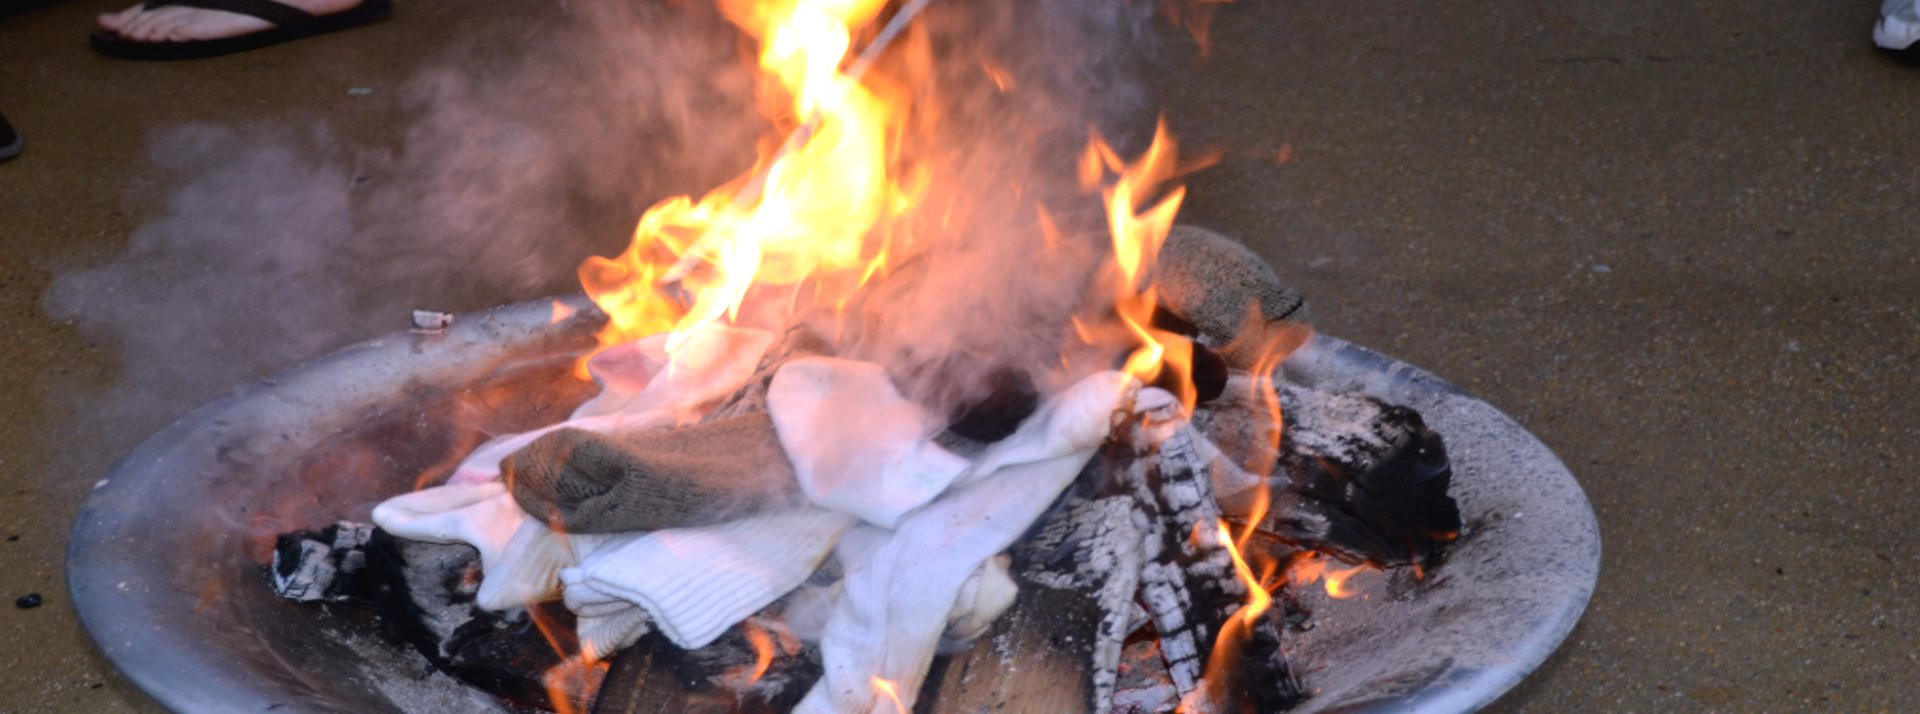 Annual Sock Burning